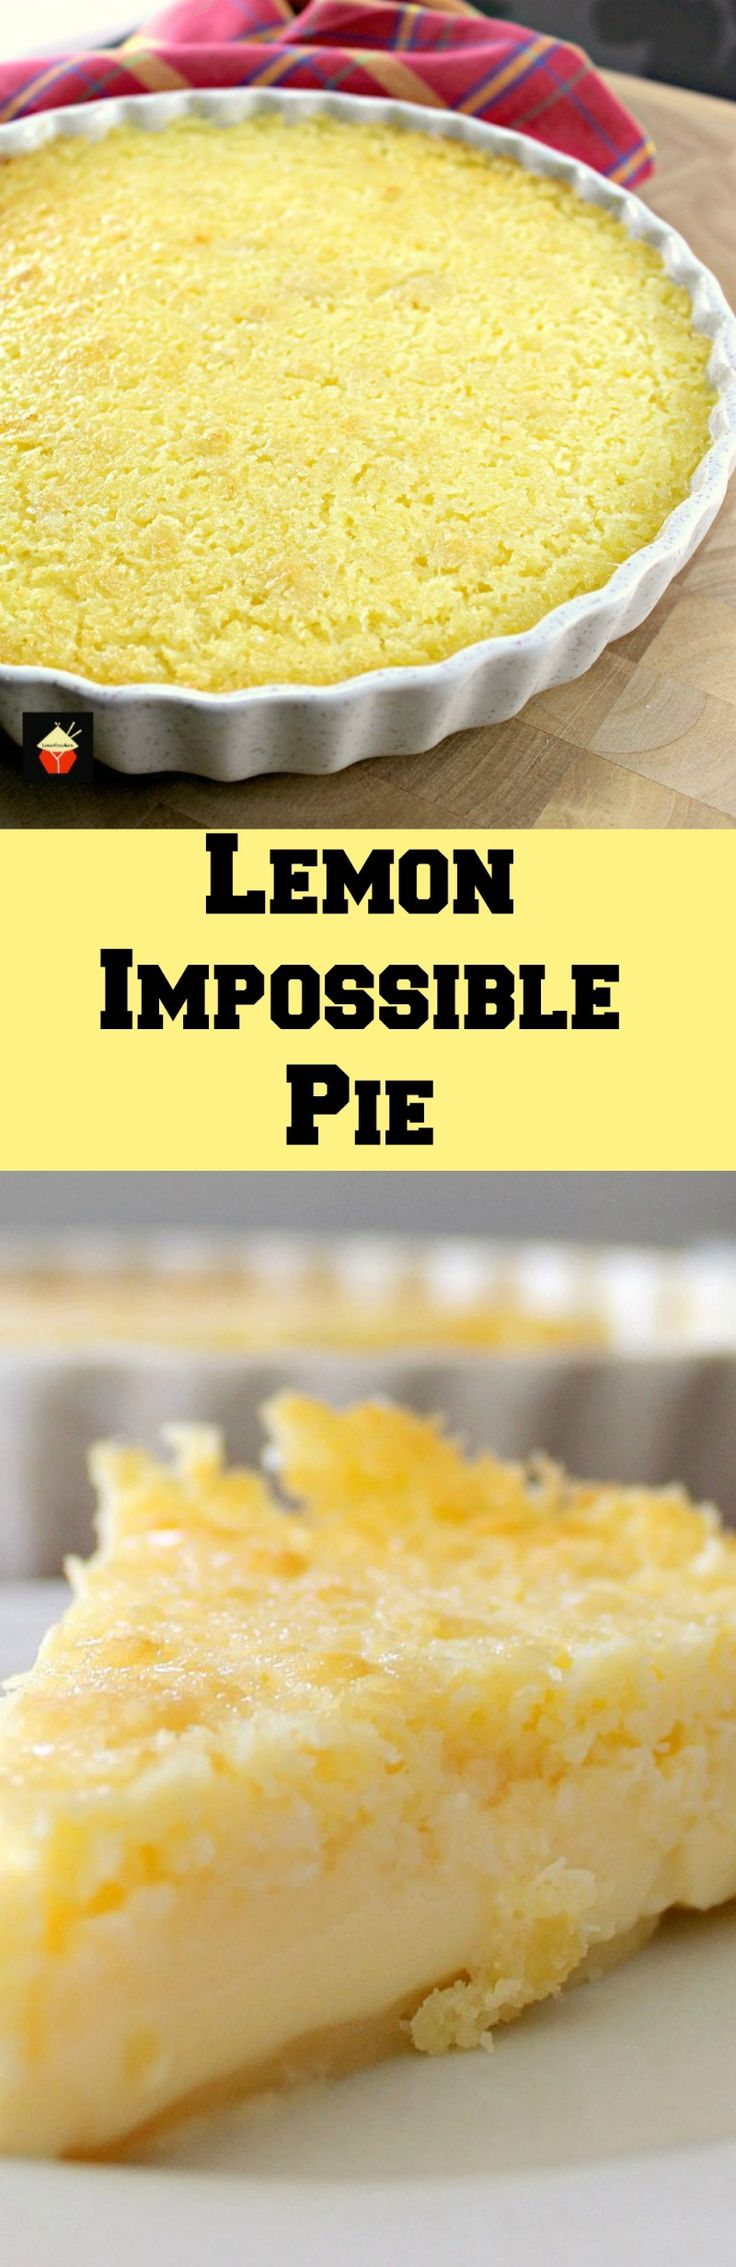 Lemon Impossible Pie! Incredibly easy to make (it forms its own crust) and the flavor is amazing! | Lovefoodies.com